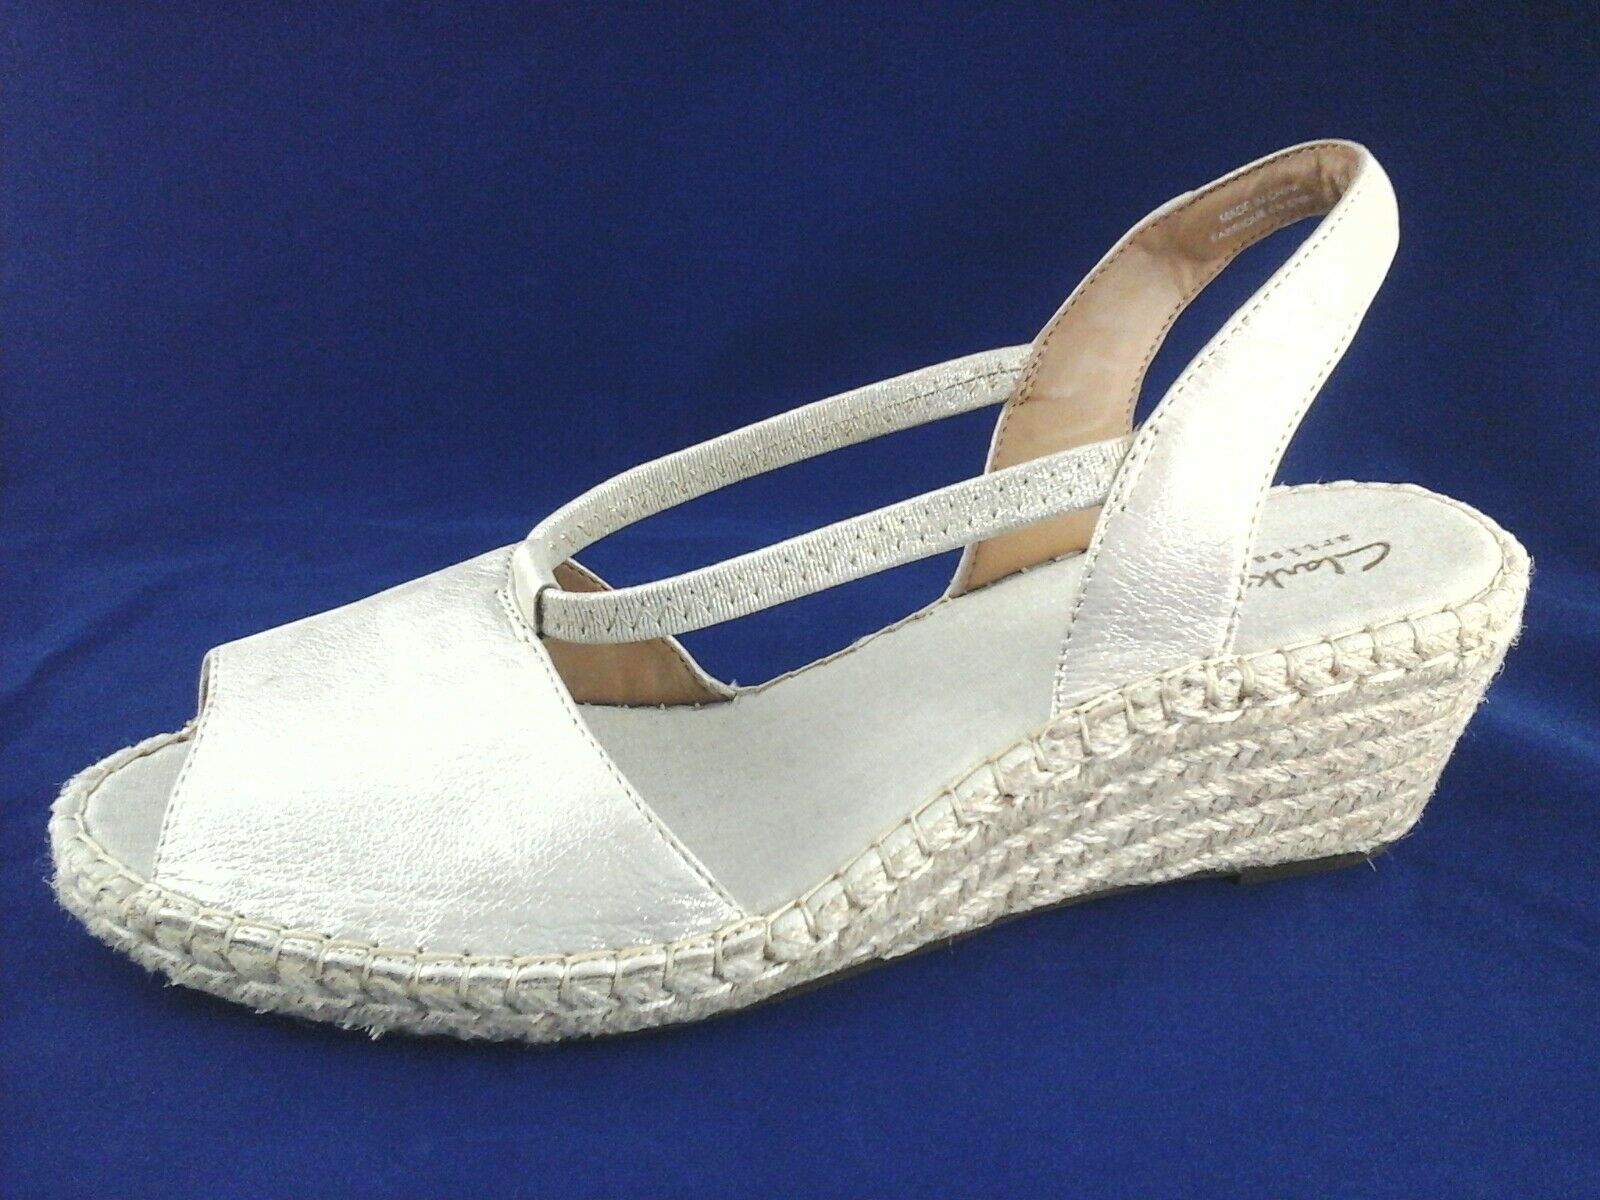 a717055feac0 CLARKS Sandals Espadrilles Gold PETRINA LULU Wedge Slip On Womens US 12 44   100